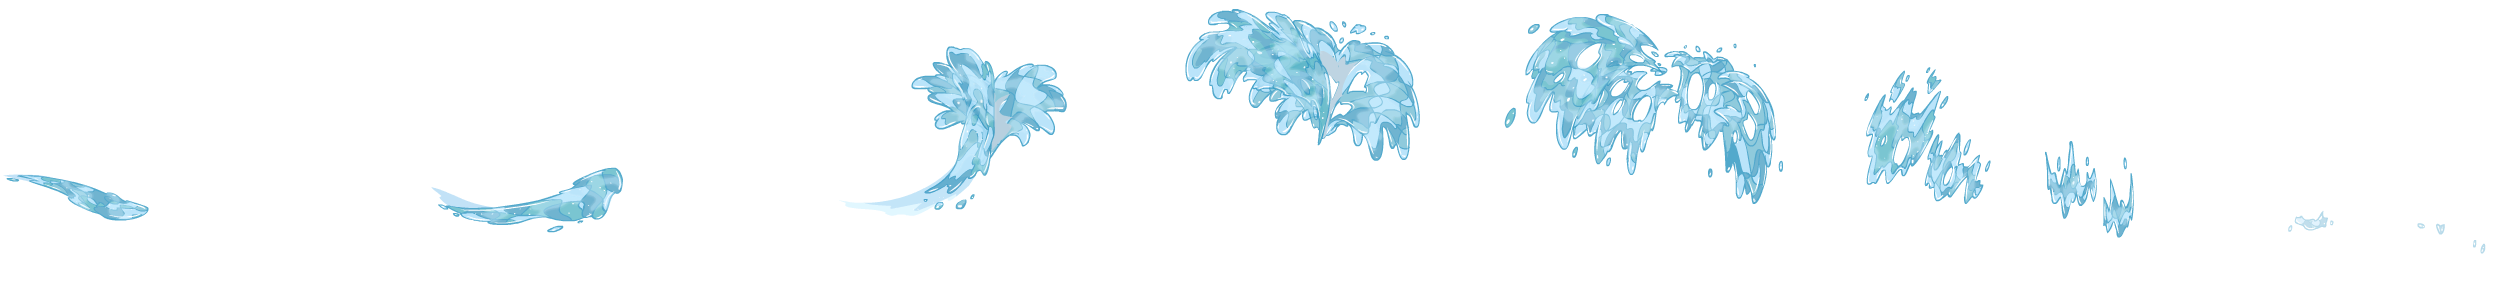 https://images.neopets.com/bd2/items/ranged/beam_water.png